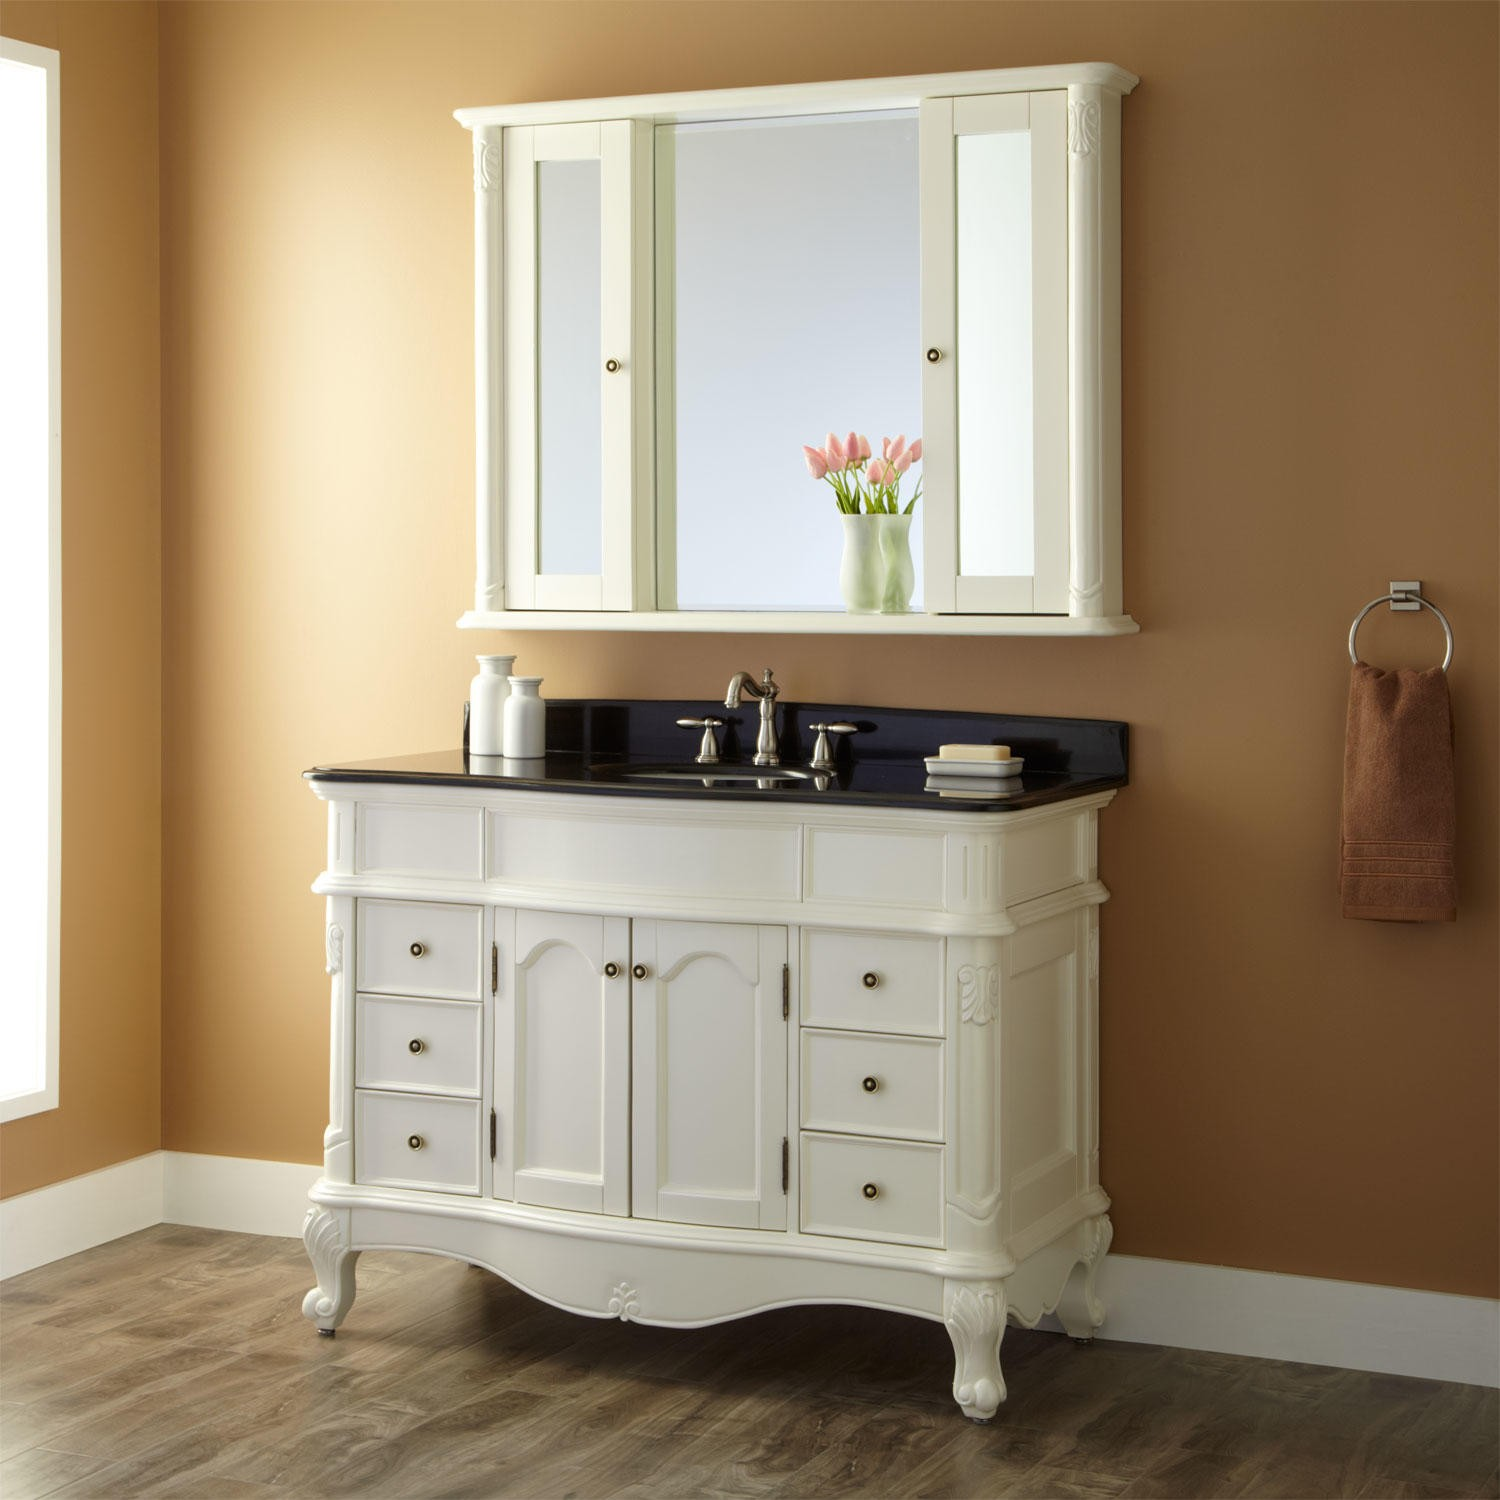 bathroom vanities with matching medicine cabinets sophisticated bathroom vanity medicine cabinet decorating idea at cabinets  ... FUXPKGE